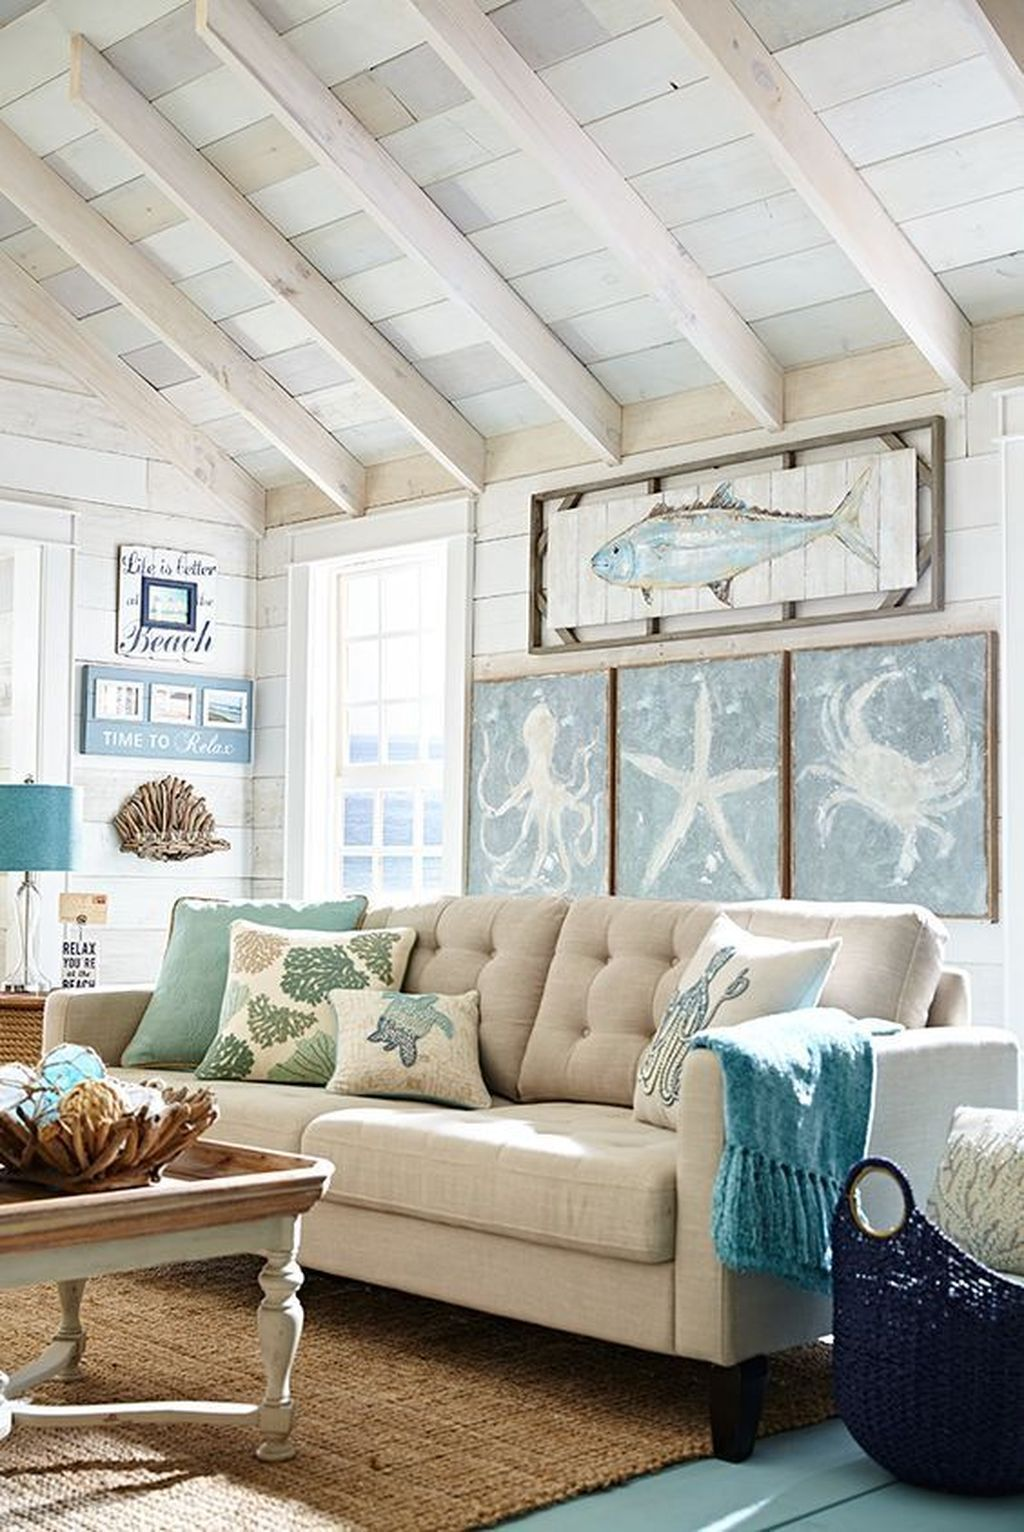 Home Decor Signs 34 Admirable Beach House Decor Ideas You Should Copy Everyday Is A In 2020 Beach Living Room Beach House Living Room Coastal Living Room Furniture